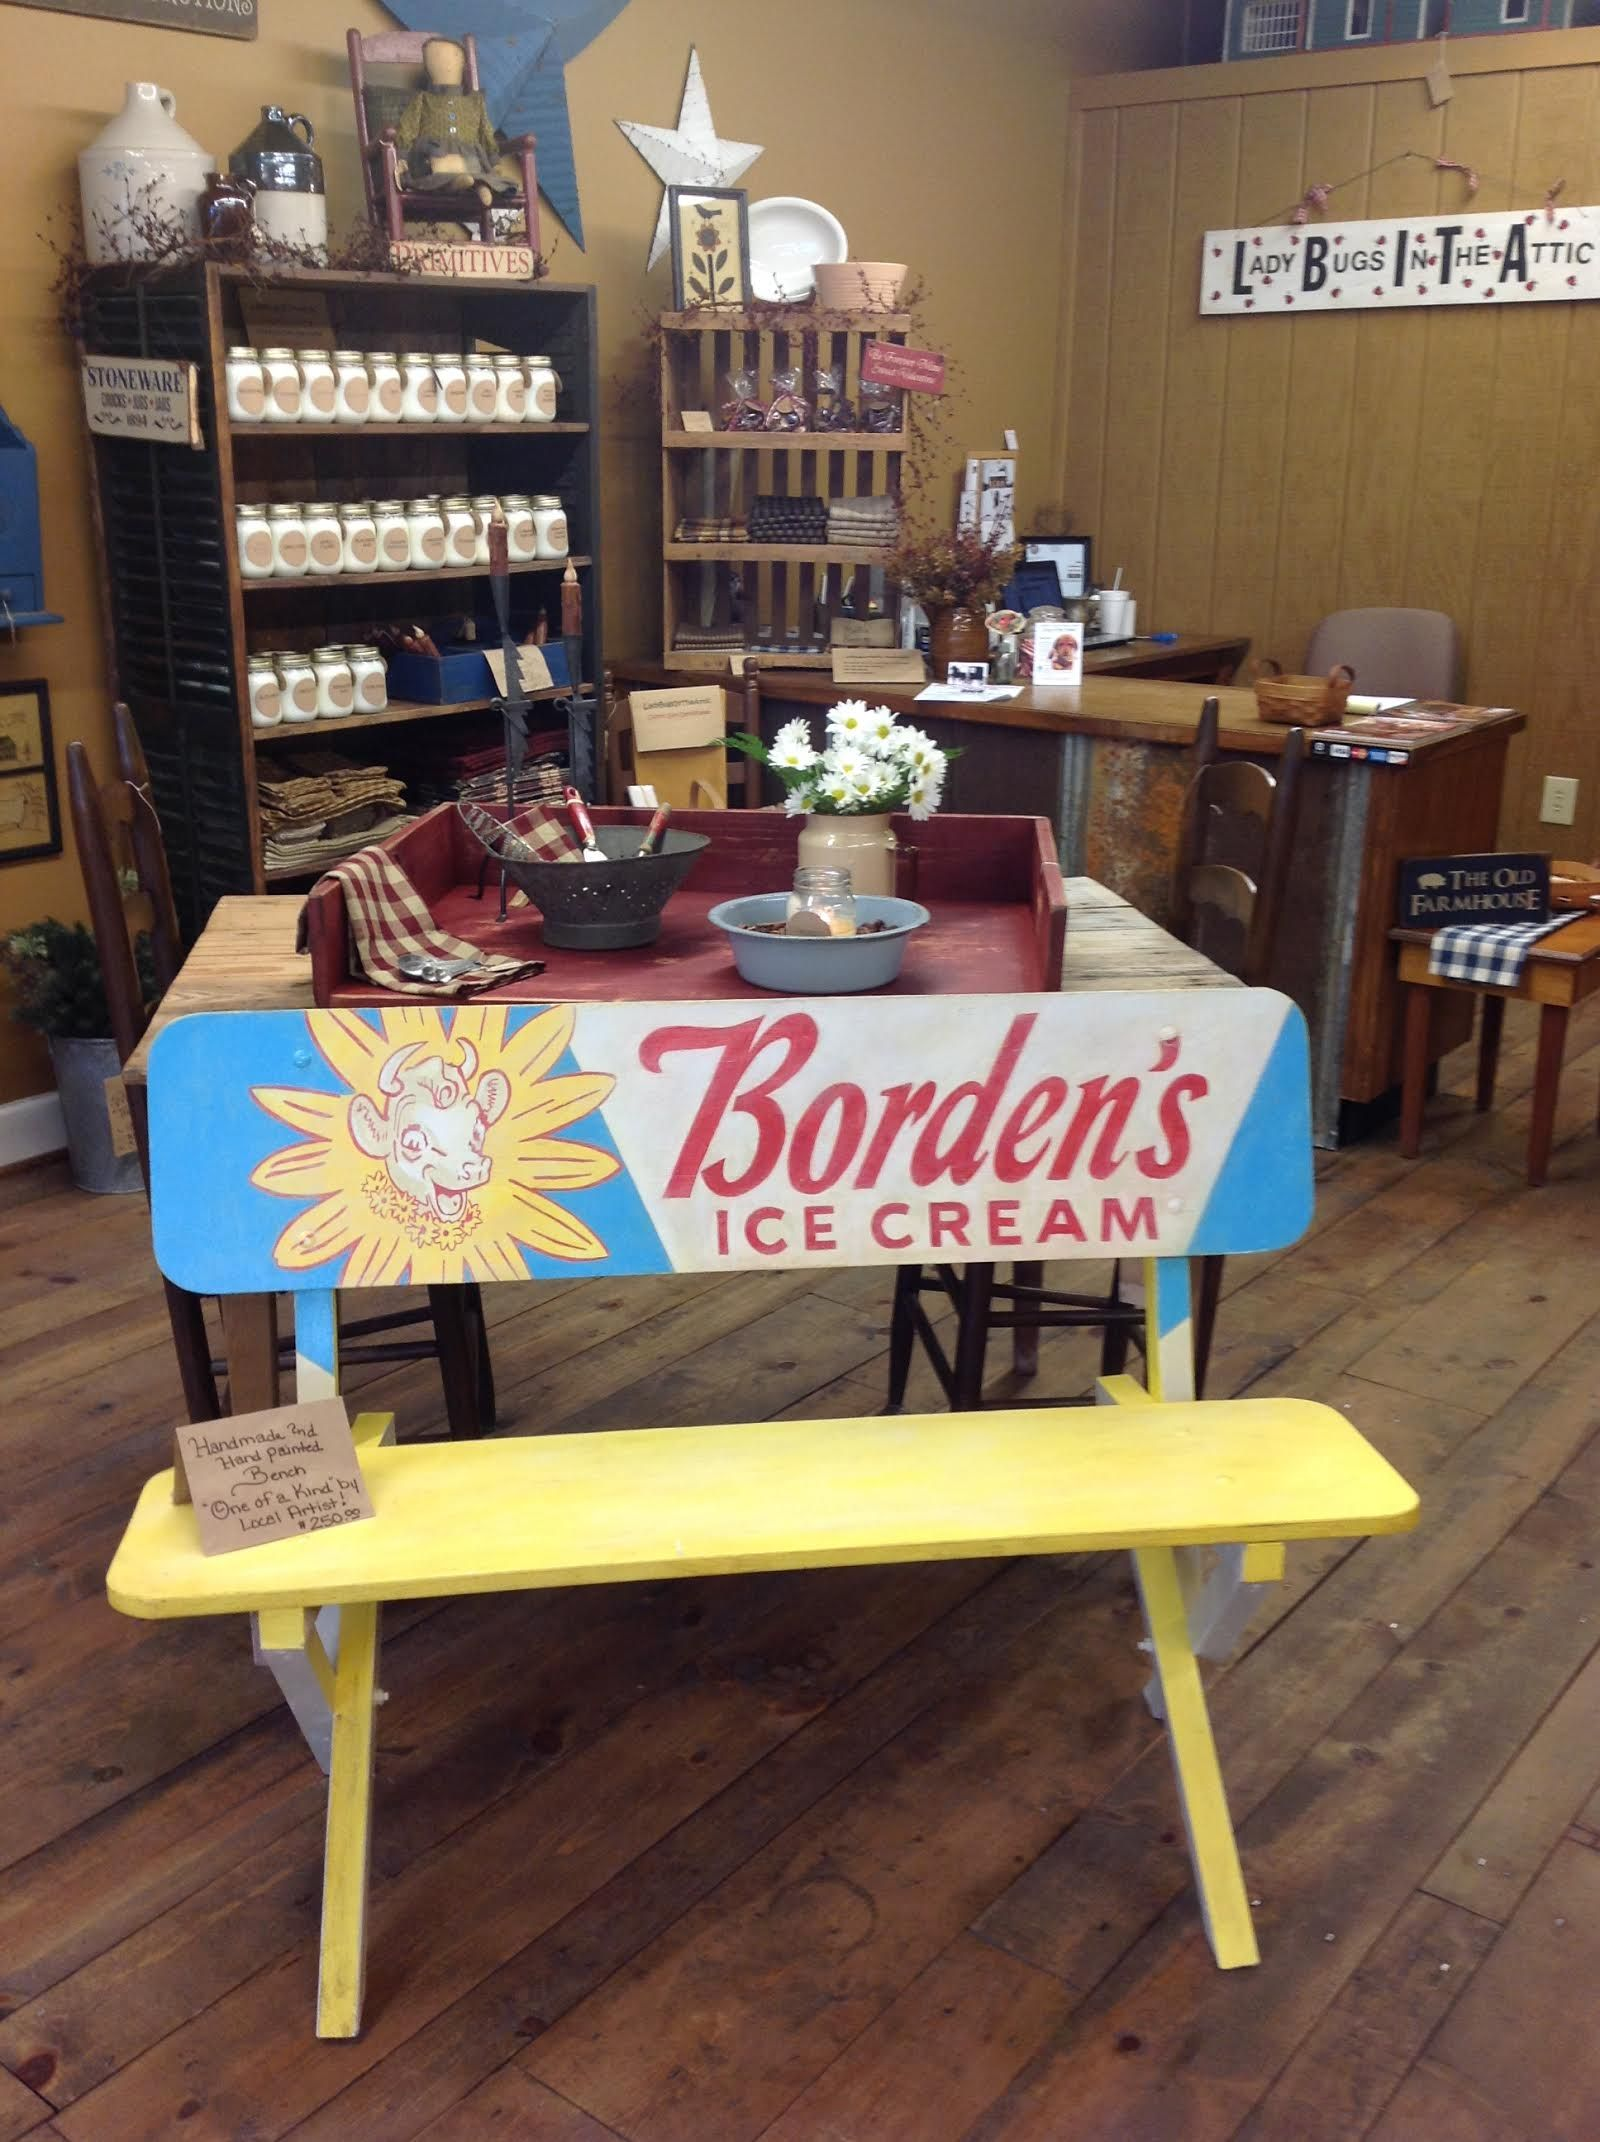 We Have a Beautiful Handmade and Hand Painted One of a Kind Bench....By a Local Dunn NC Artist !!! — at LadyBugsInTheAttic.